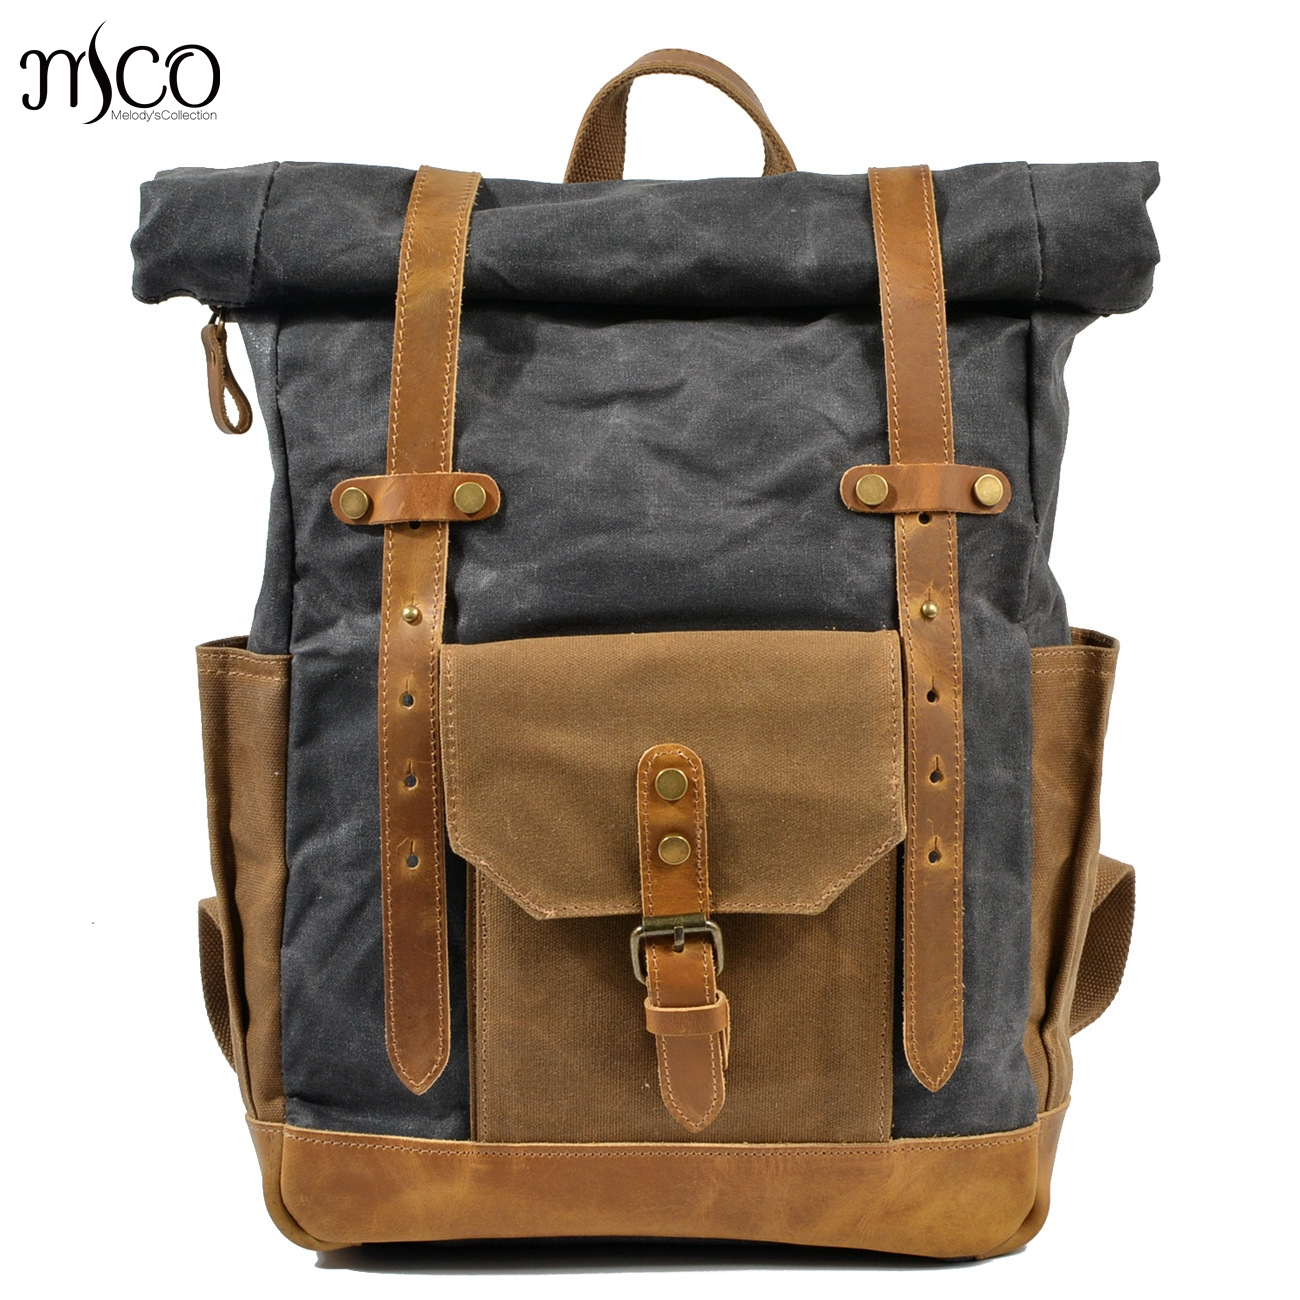 2018 Men Vintage Military Backpack Large Capacity Waterproof Oil Leather Wexed Canvas bags Travel Bag School Rucksack Backpack 2018 men vintage military backpack large capacity waterproof oil leather wexed canvas bags travel bag school rucksack backpack